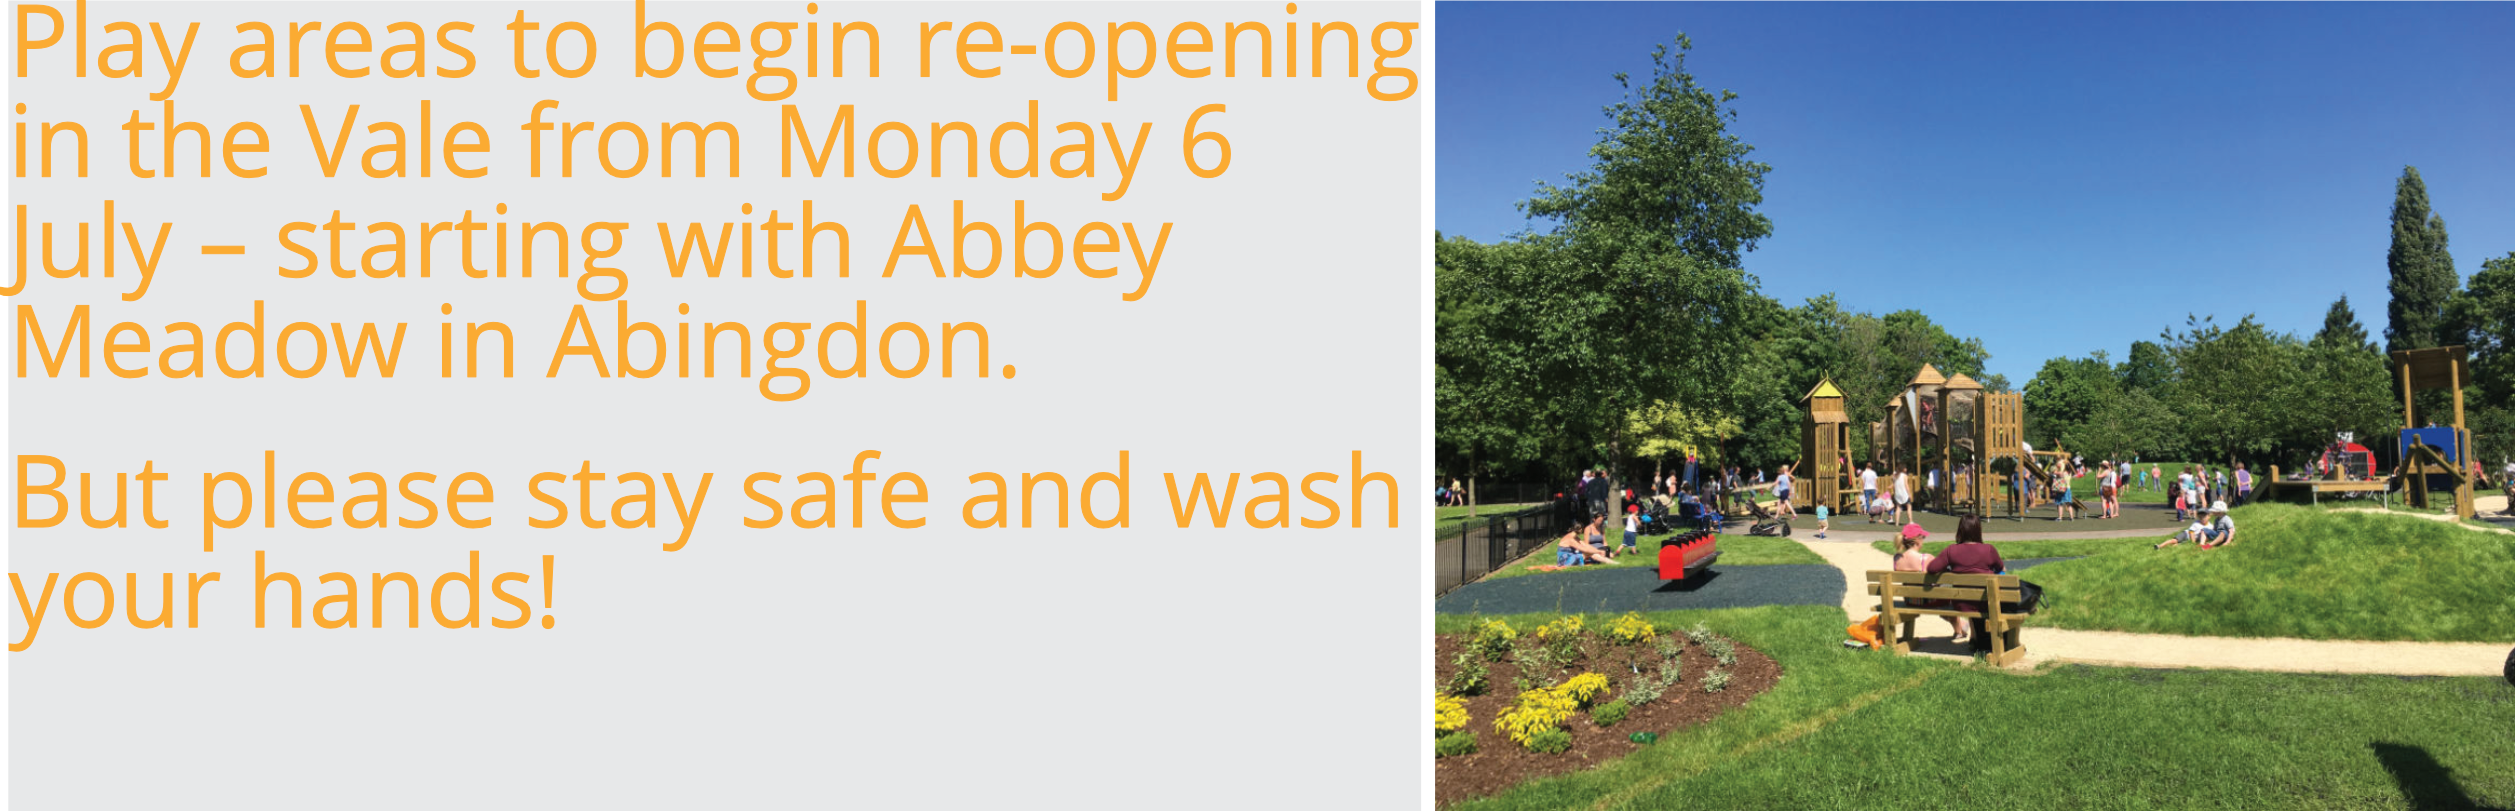 Play areas to begin re-opening in the Vale from Monday 6 July – but please stay safe and wash your hands!